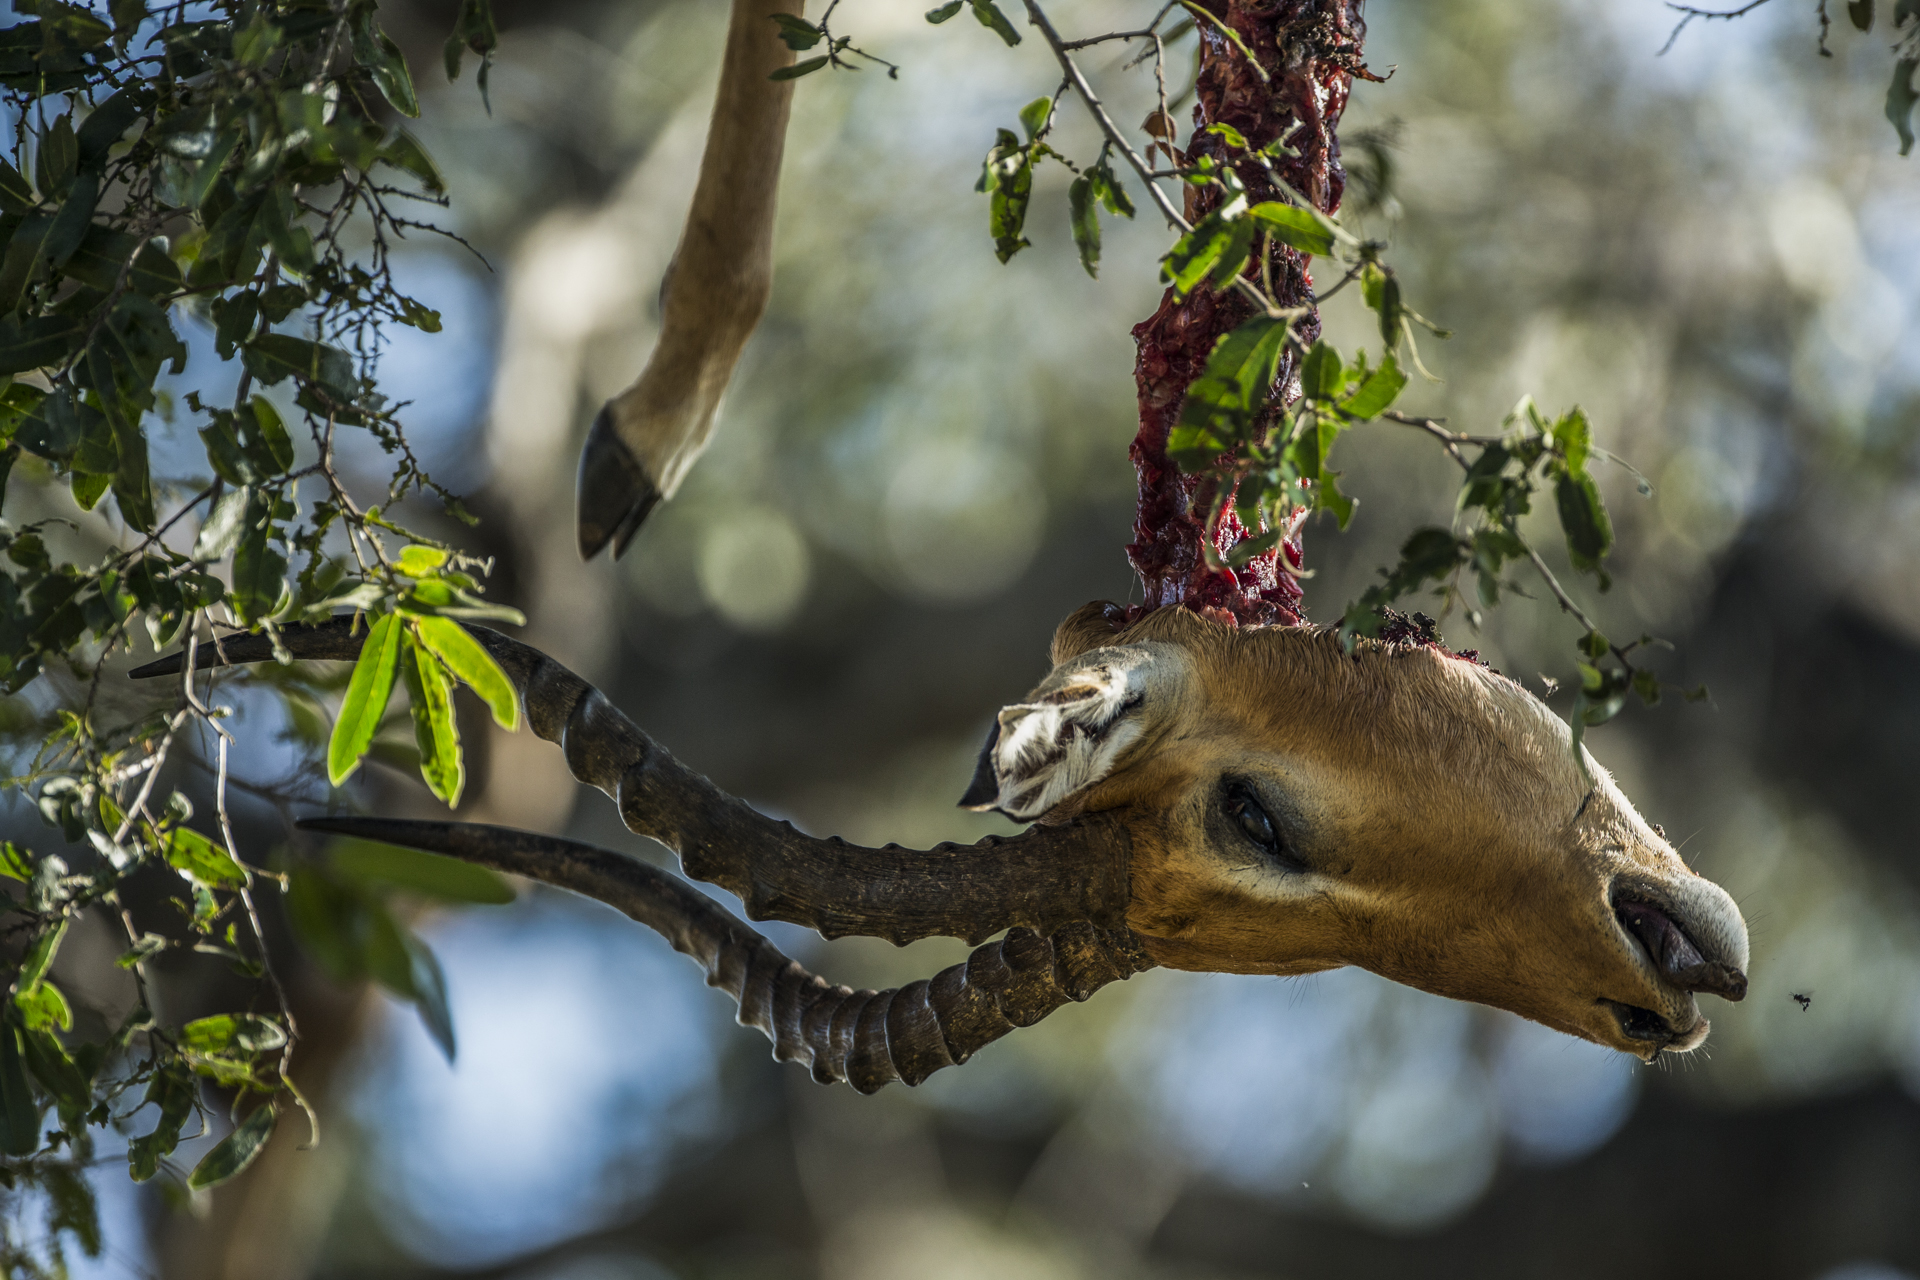 With lions and hyenas prowling, the safest place for a leopards meal was high up in the trees from any potential thieves.